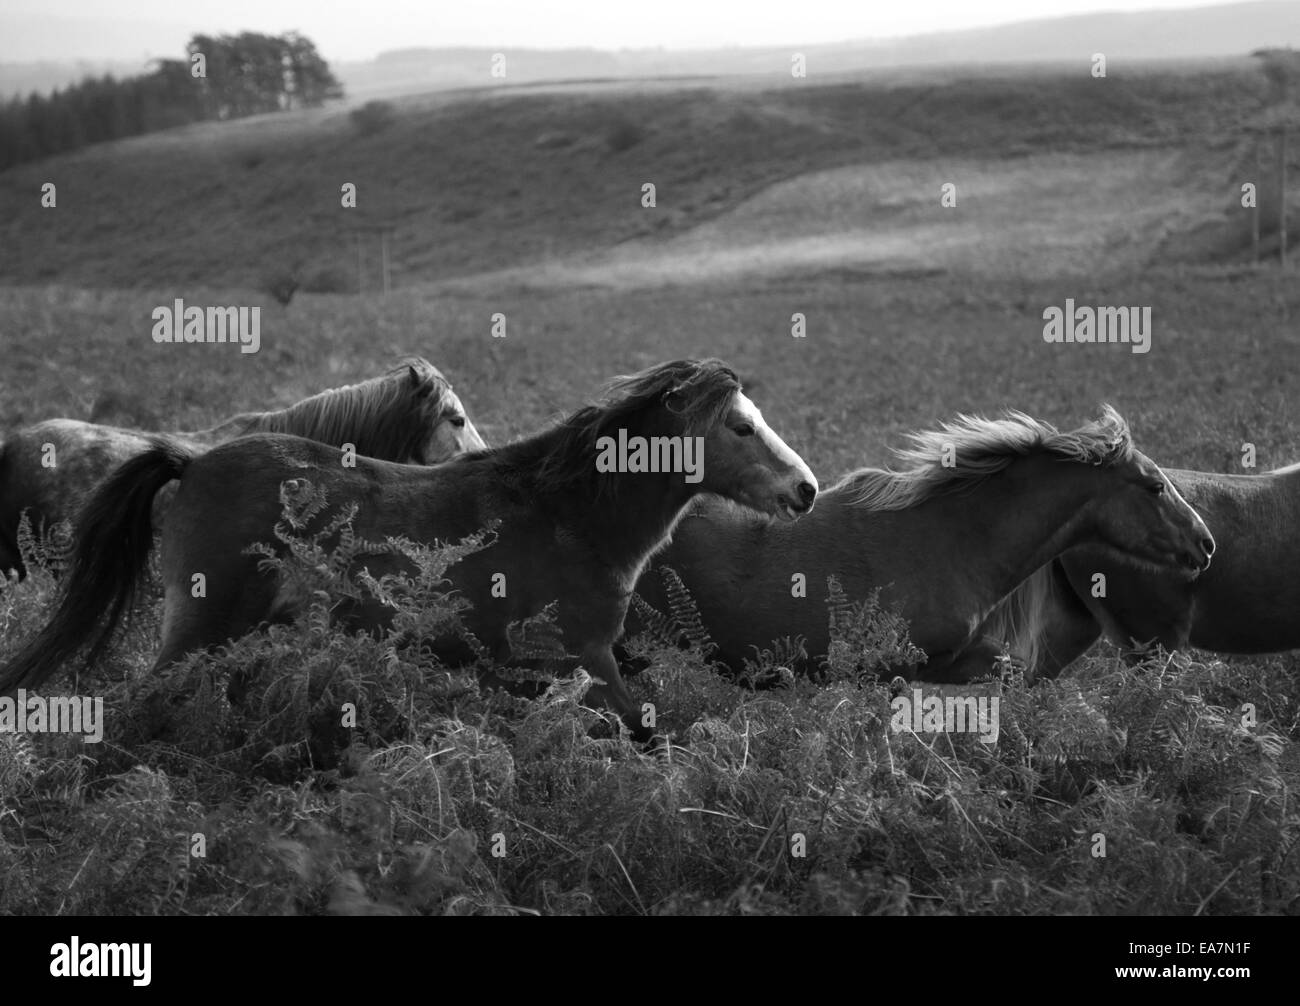 Wild Welsh ponies running on the Rhulen hills, near Builth Wells, Wales, UK - Stock Image